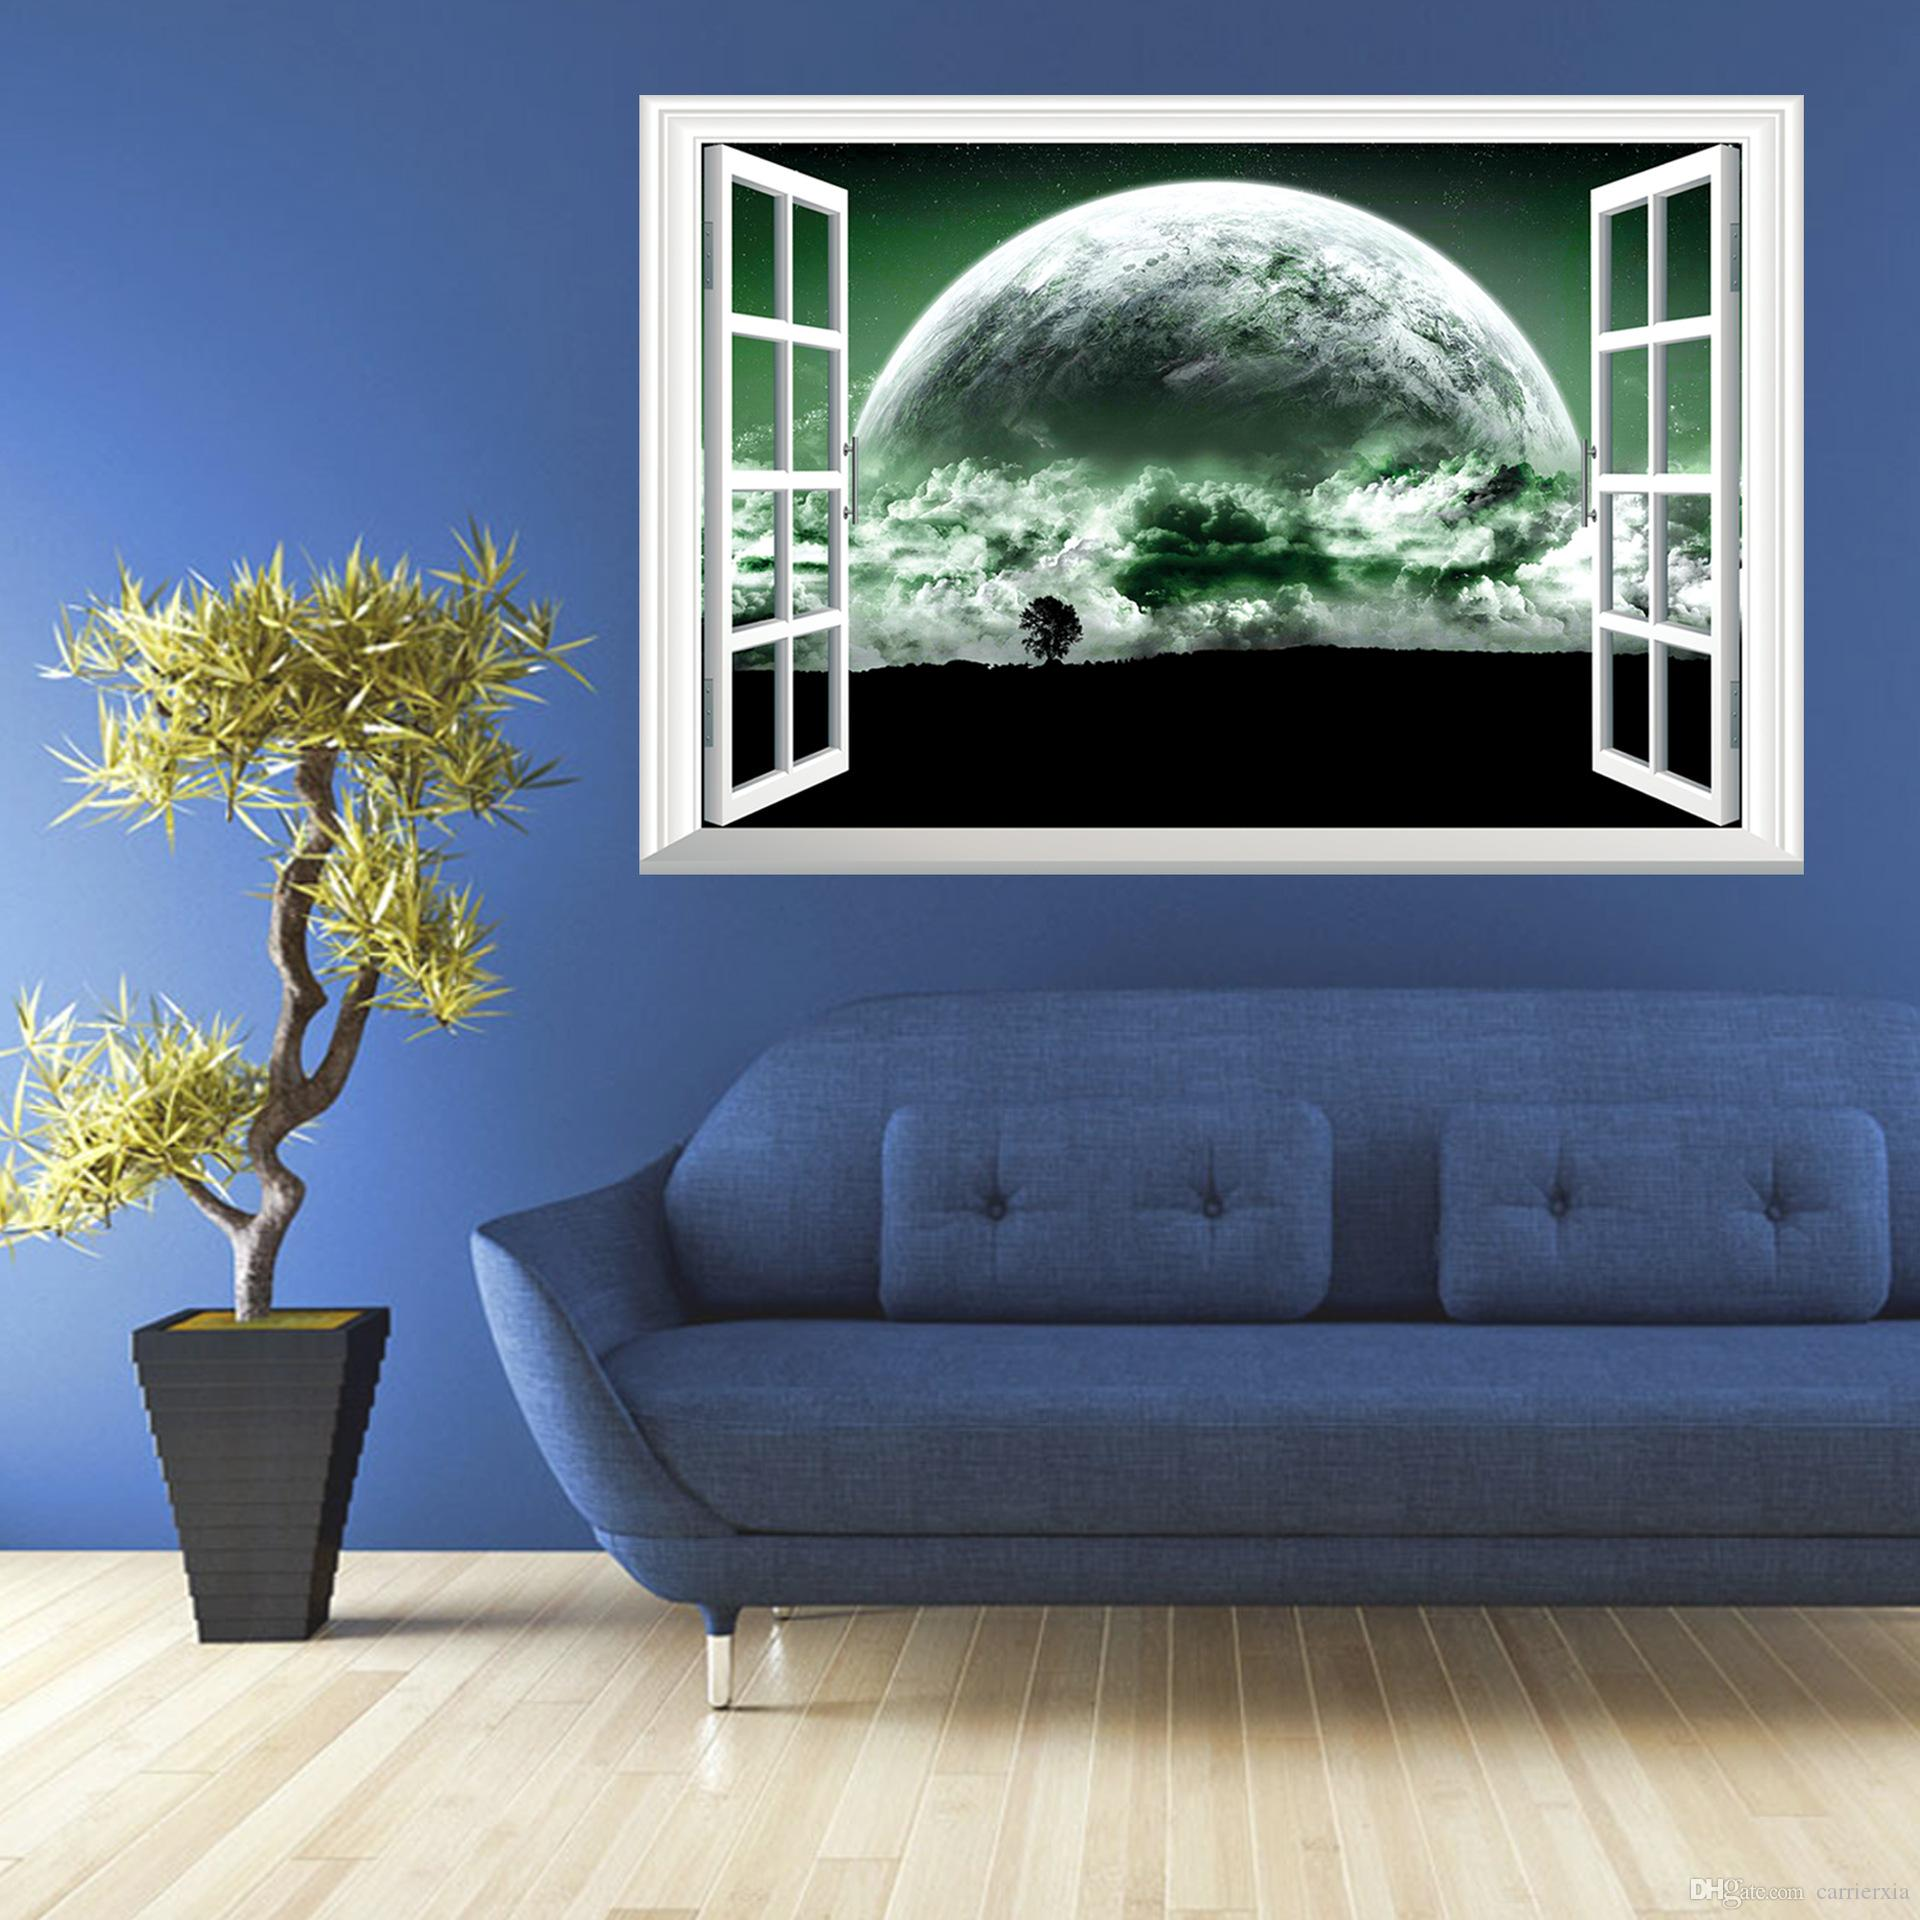 3d superstars fake windows wall stickers home decoration 5070cm 3d superstars fake windows wall stickers home decoration 5070cm pvc uninjurious wall decal mural for kids decals for home walls decals for the home from amipublicfo Images